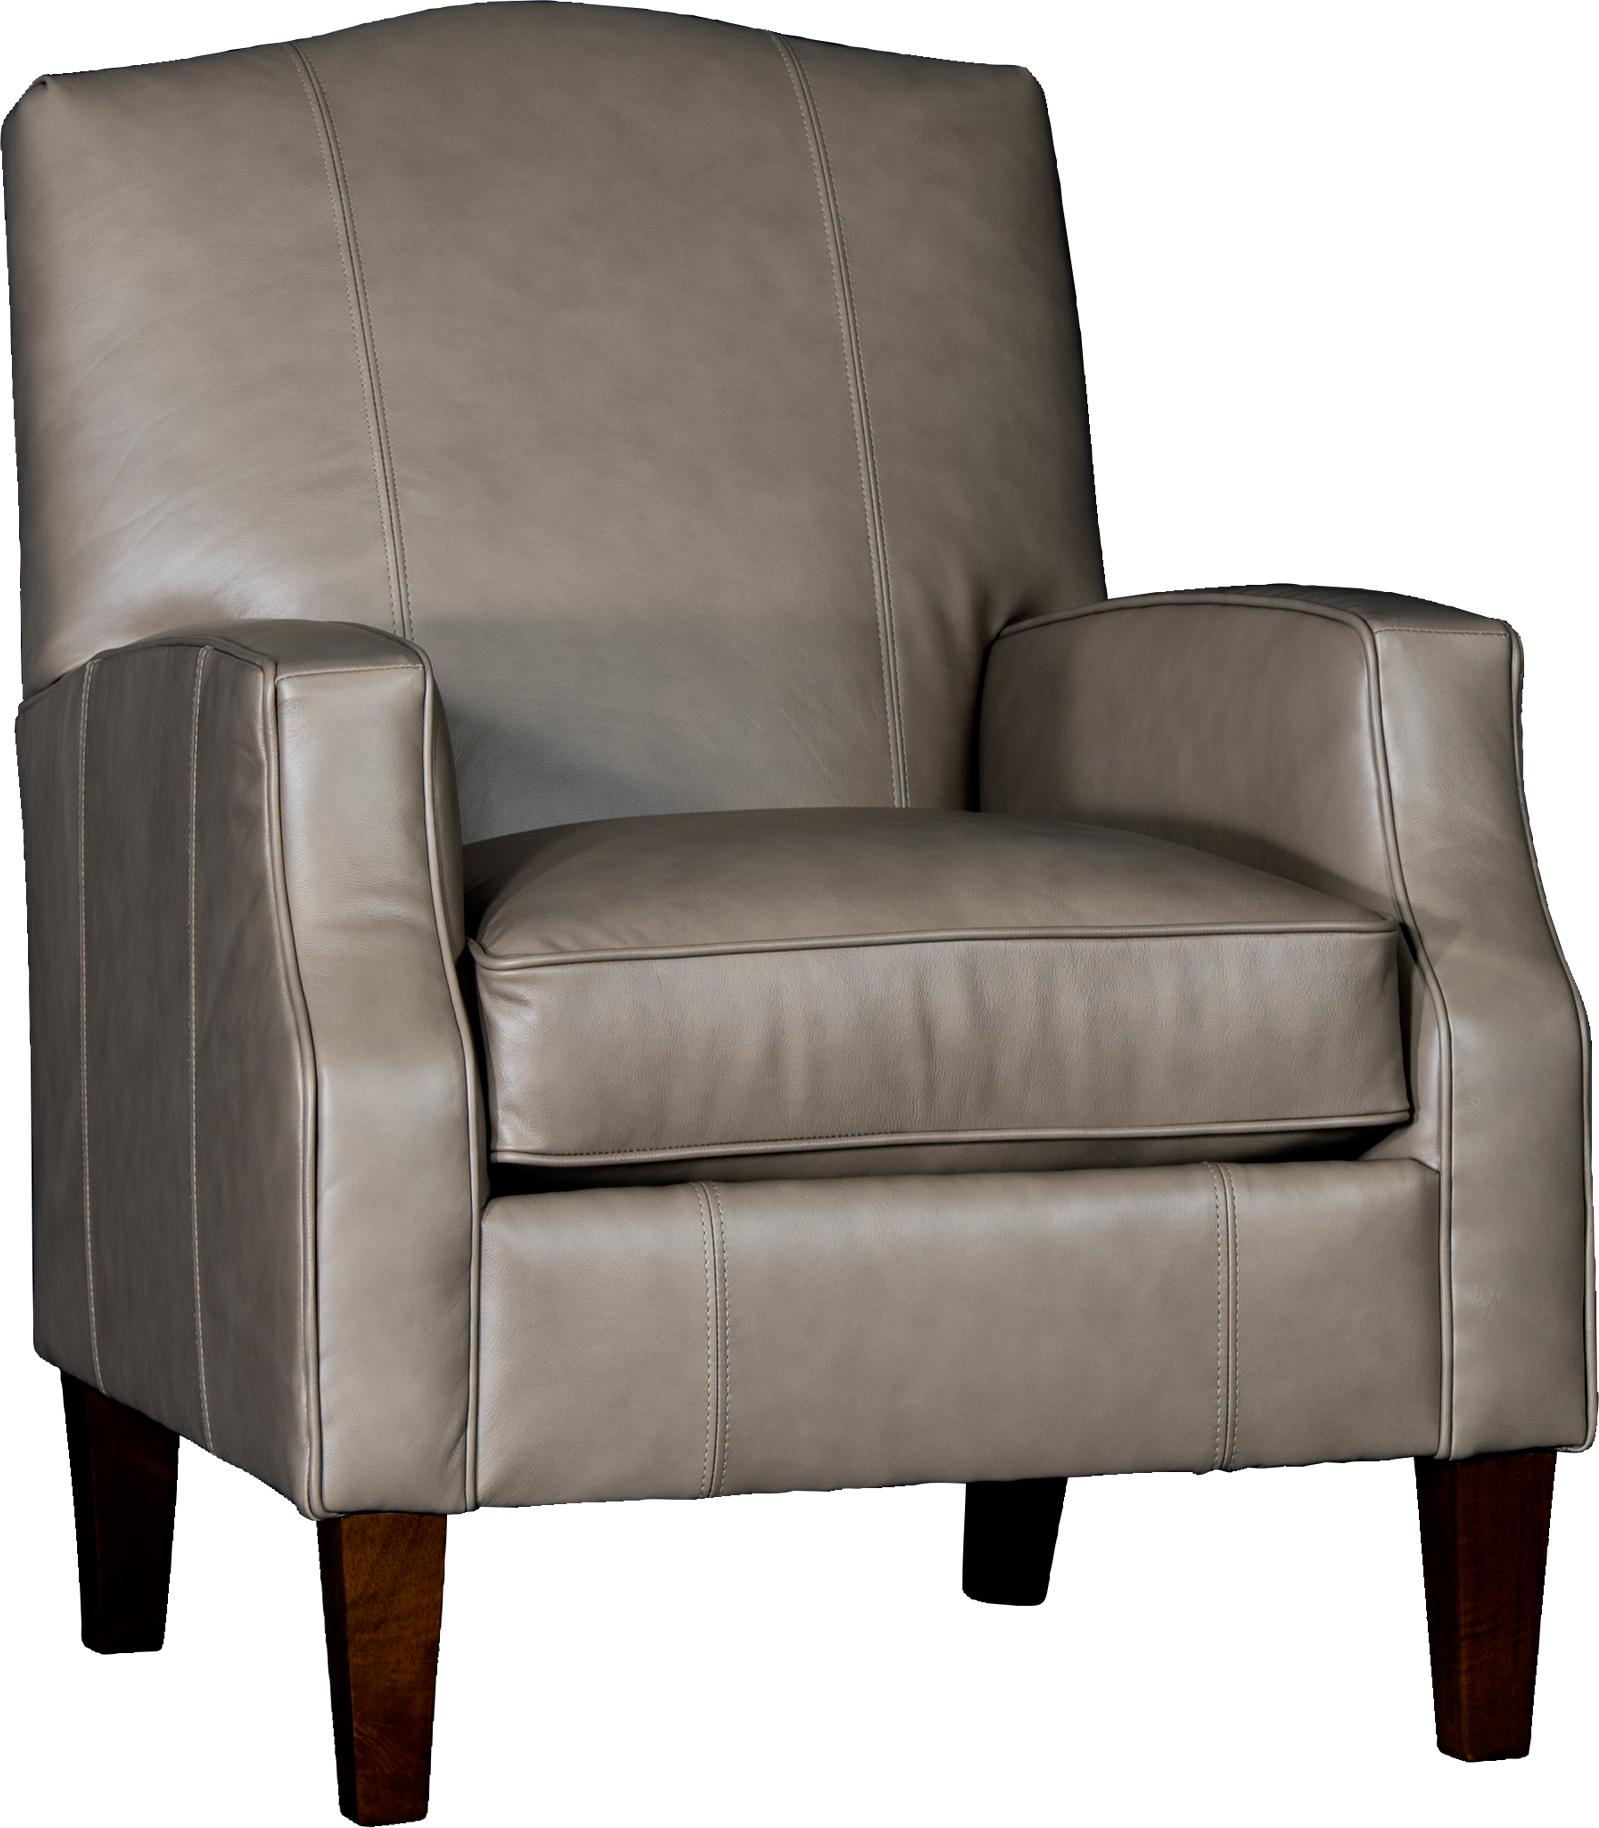 3725 Chair by Mayo at Wilson's Furniture